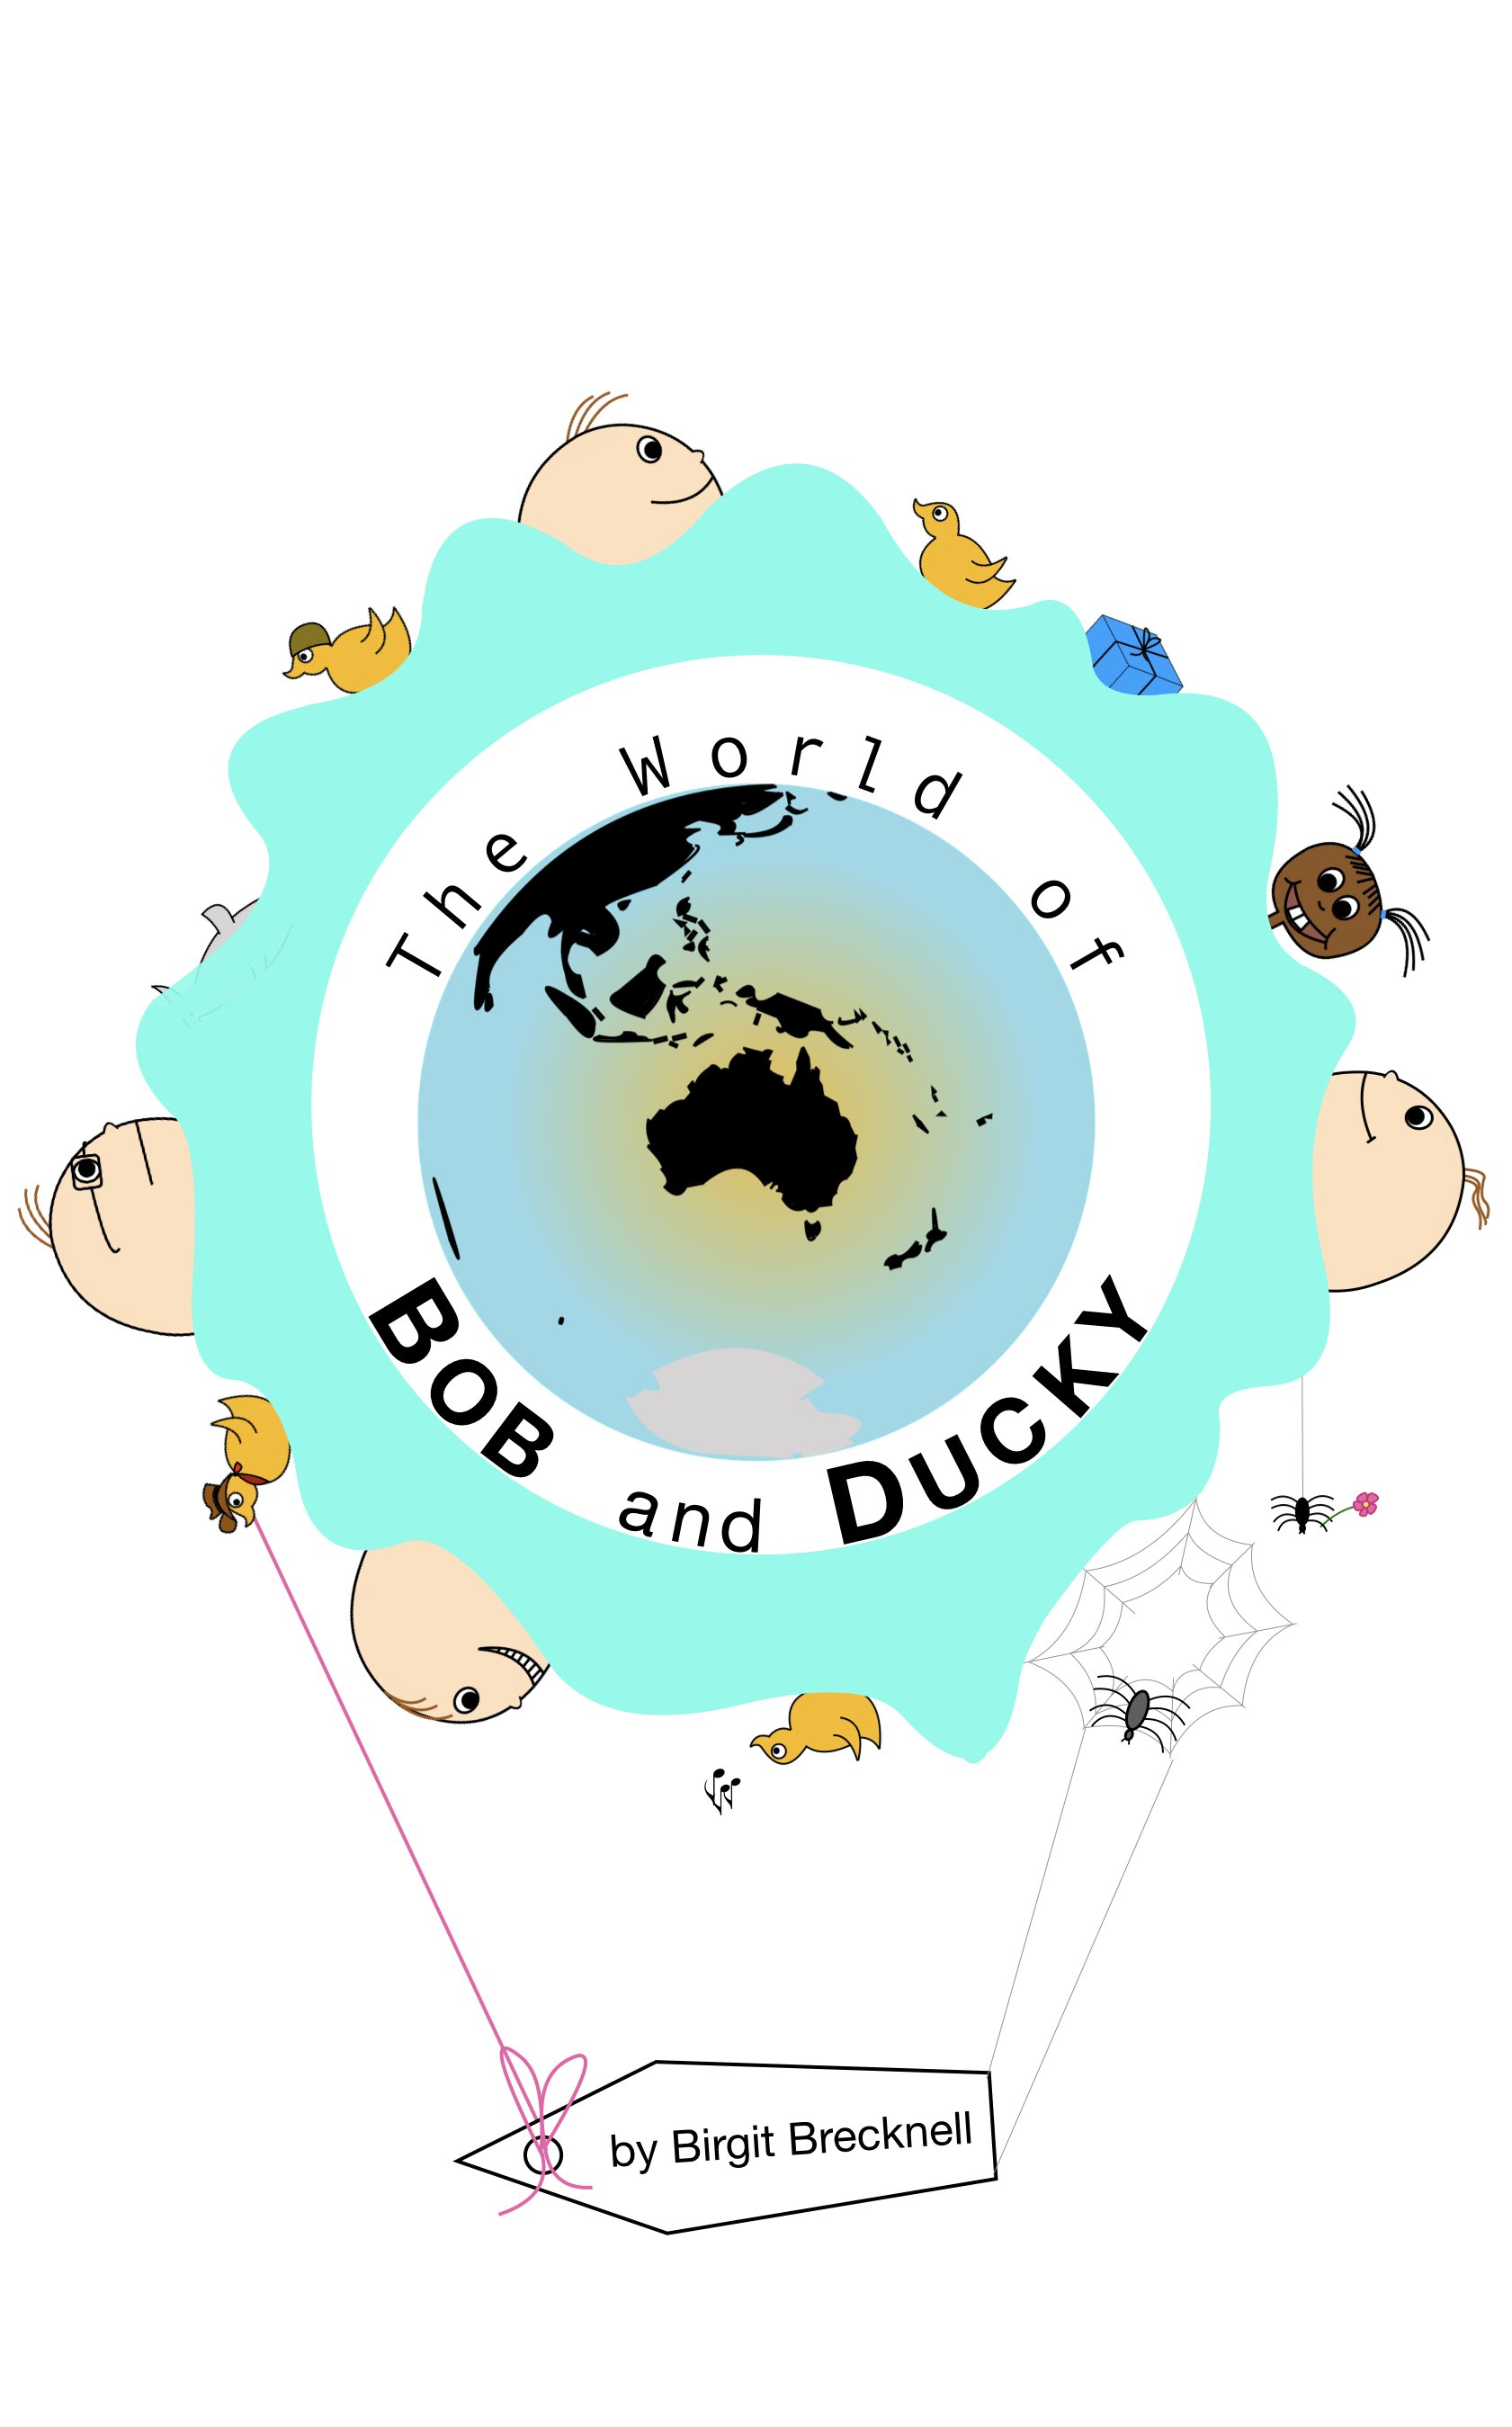 Bob and Ducky cartoon